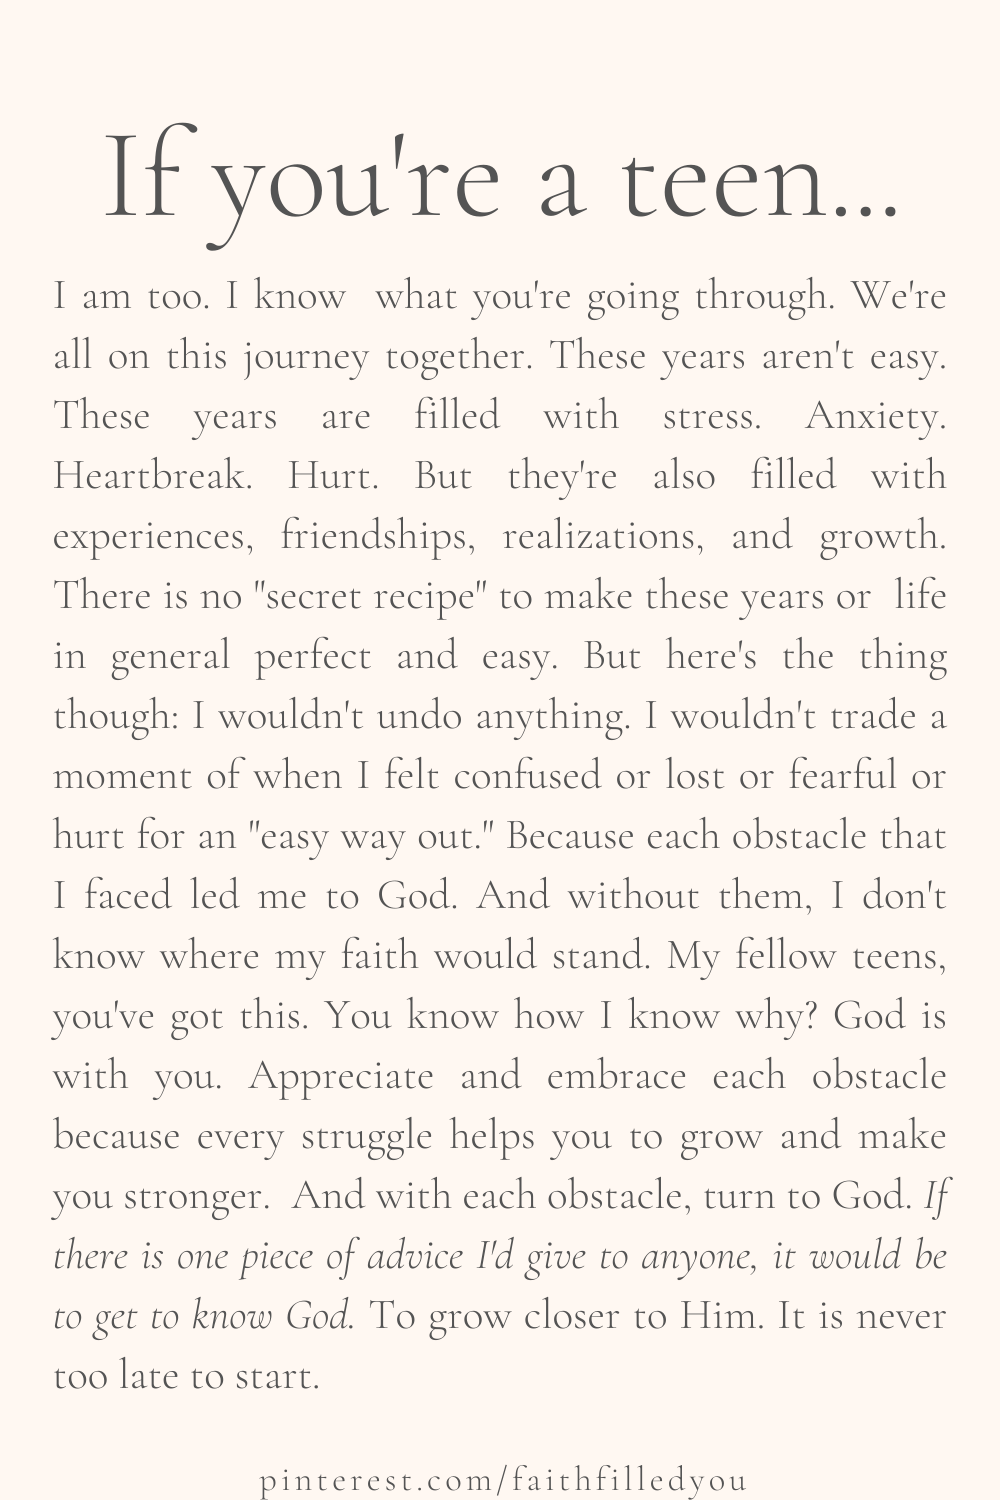 Faith Quote / Message To Teens About Life